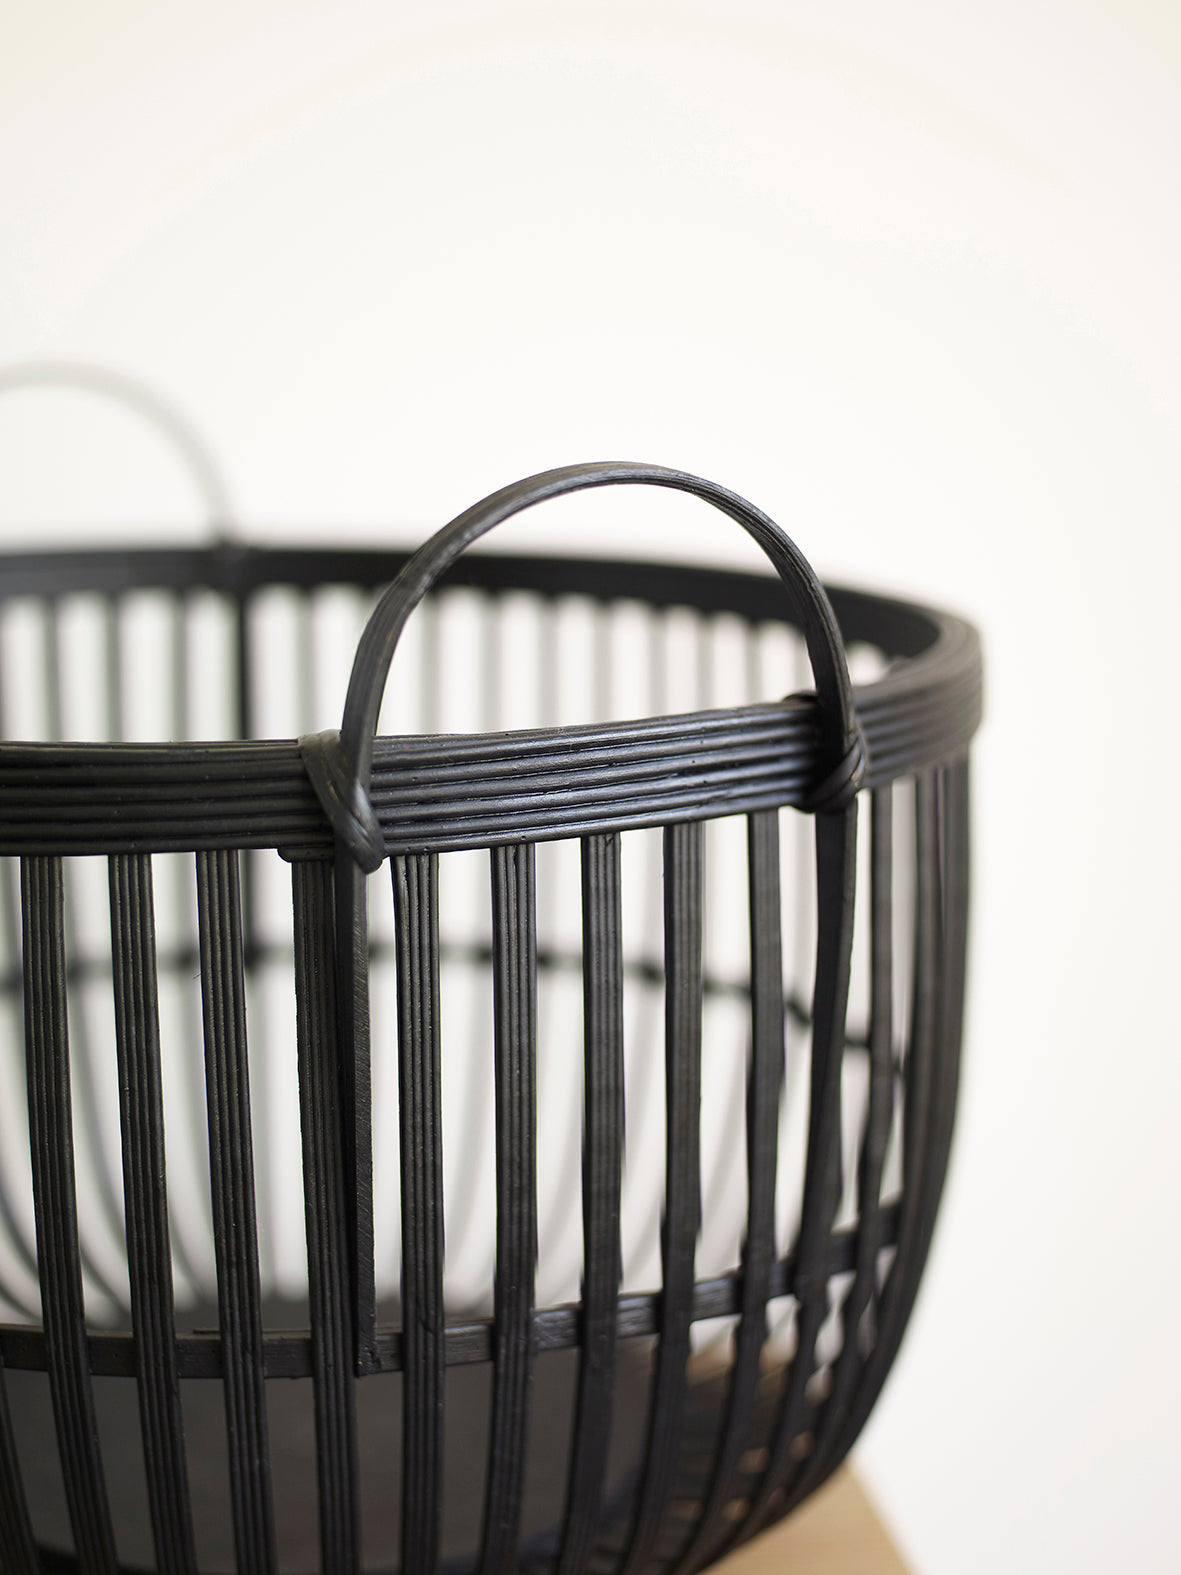 Black Round Rattan Basket with Handles in Small Size